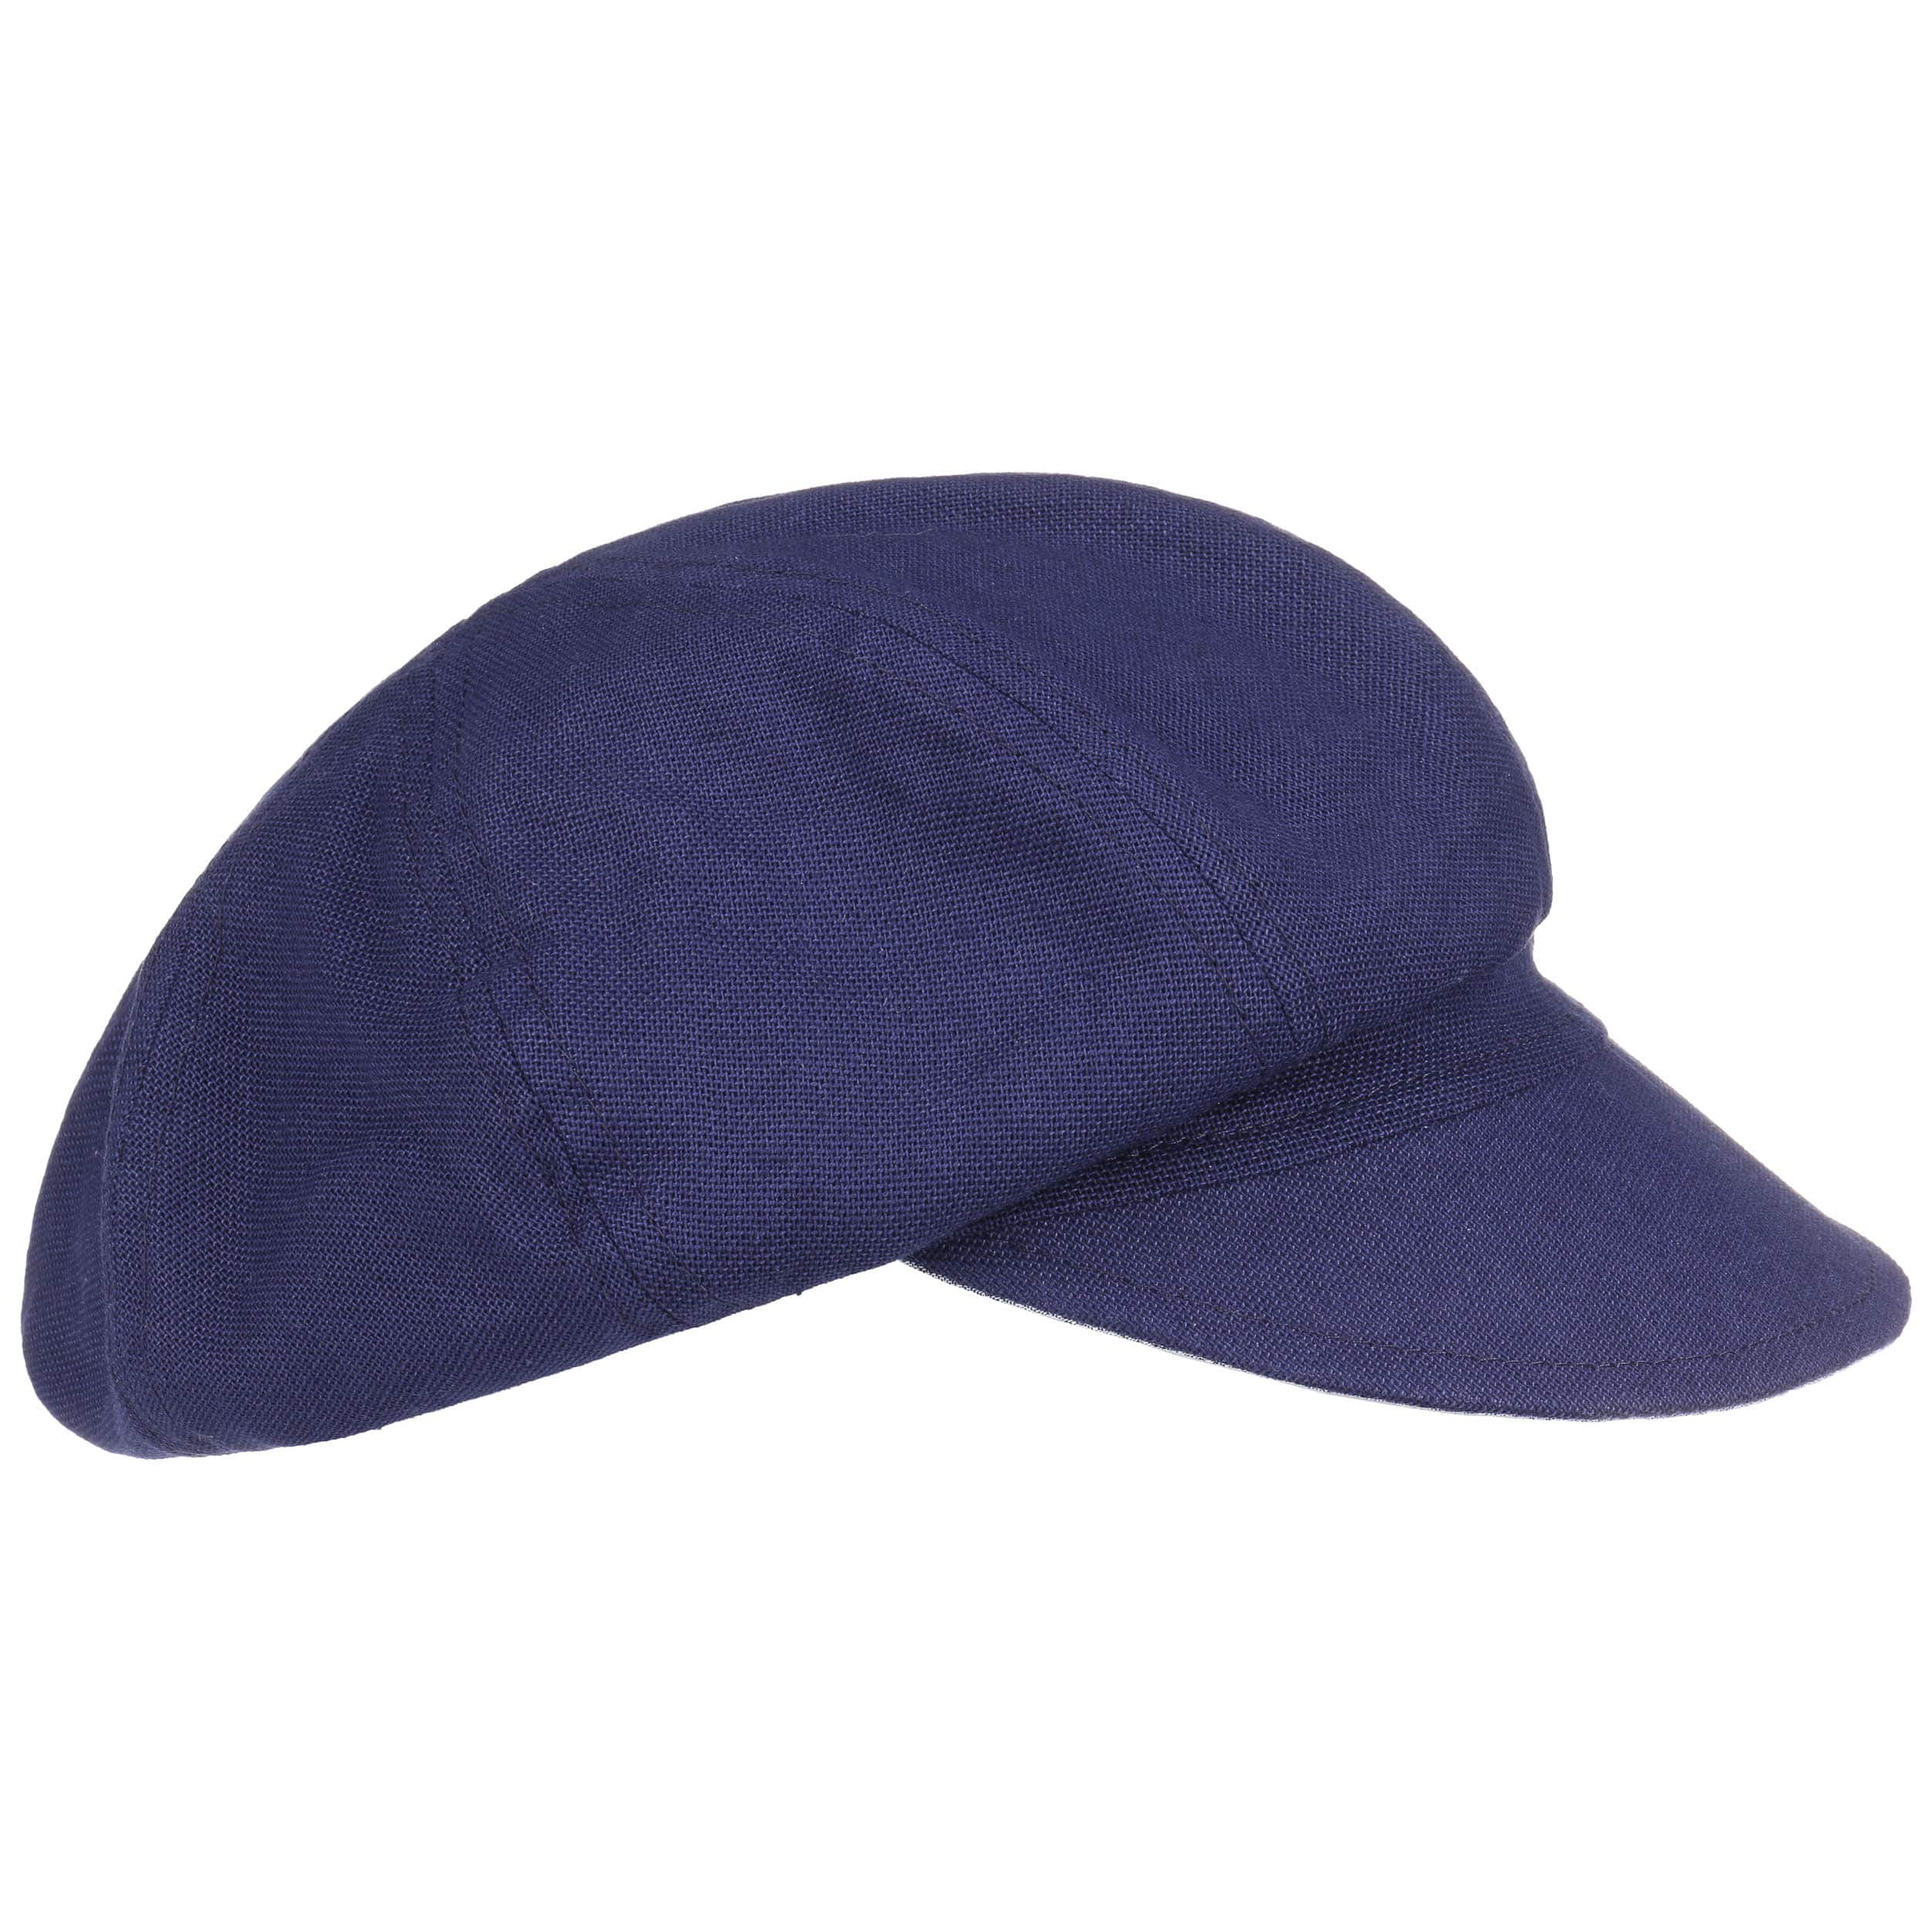 ... Classic Newsboy Cap by Seeberger - navy 6 ... 8c7928d0afc2